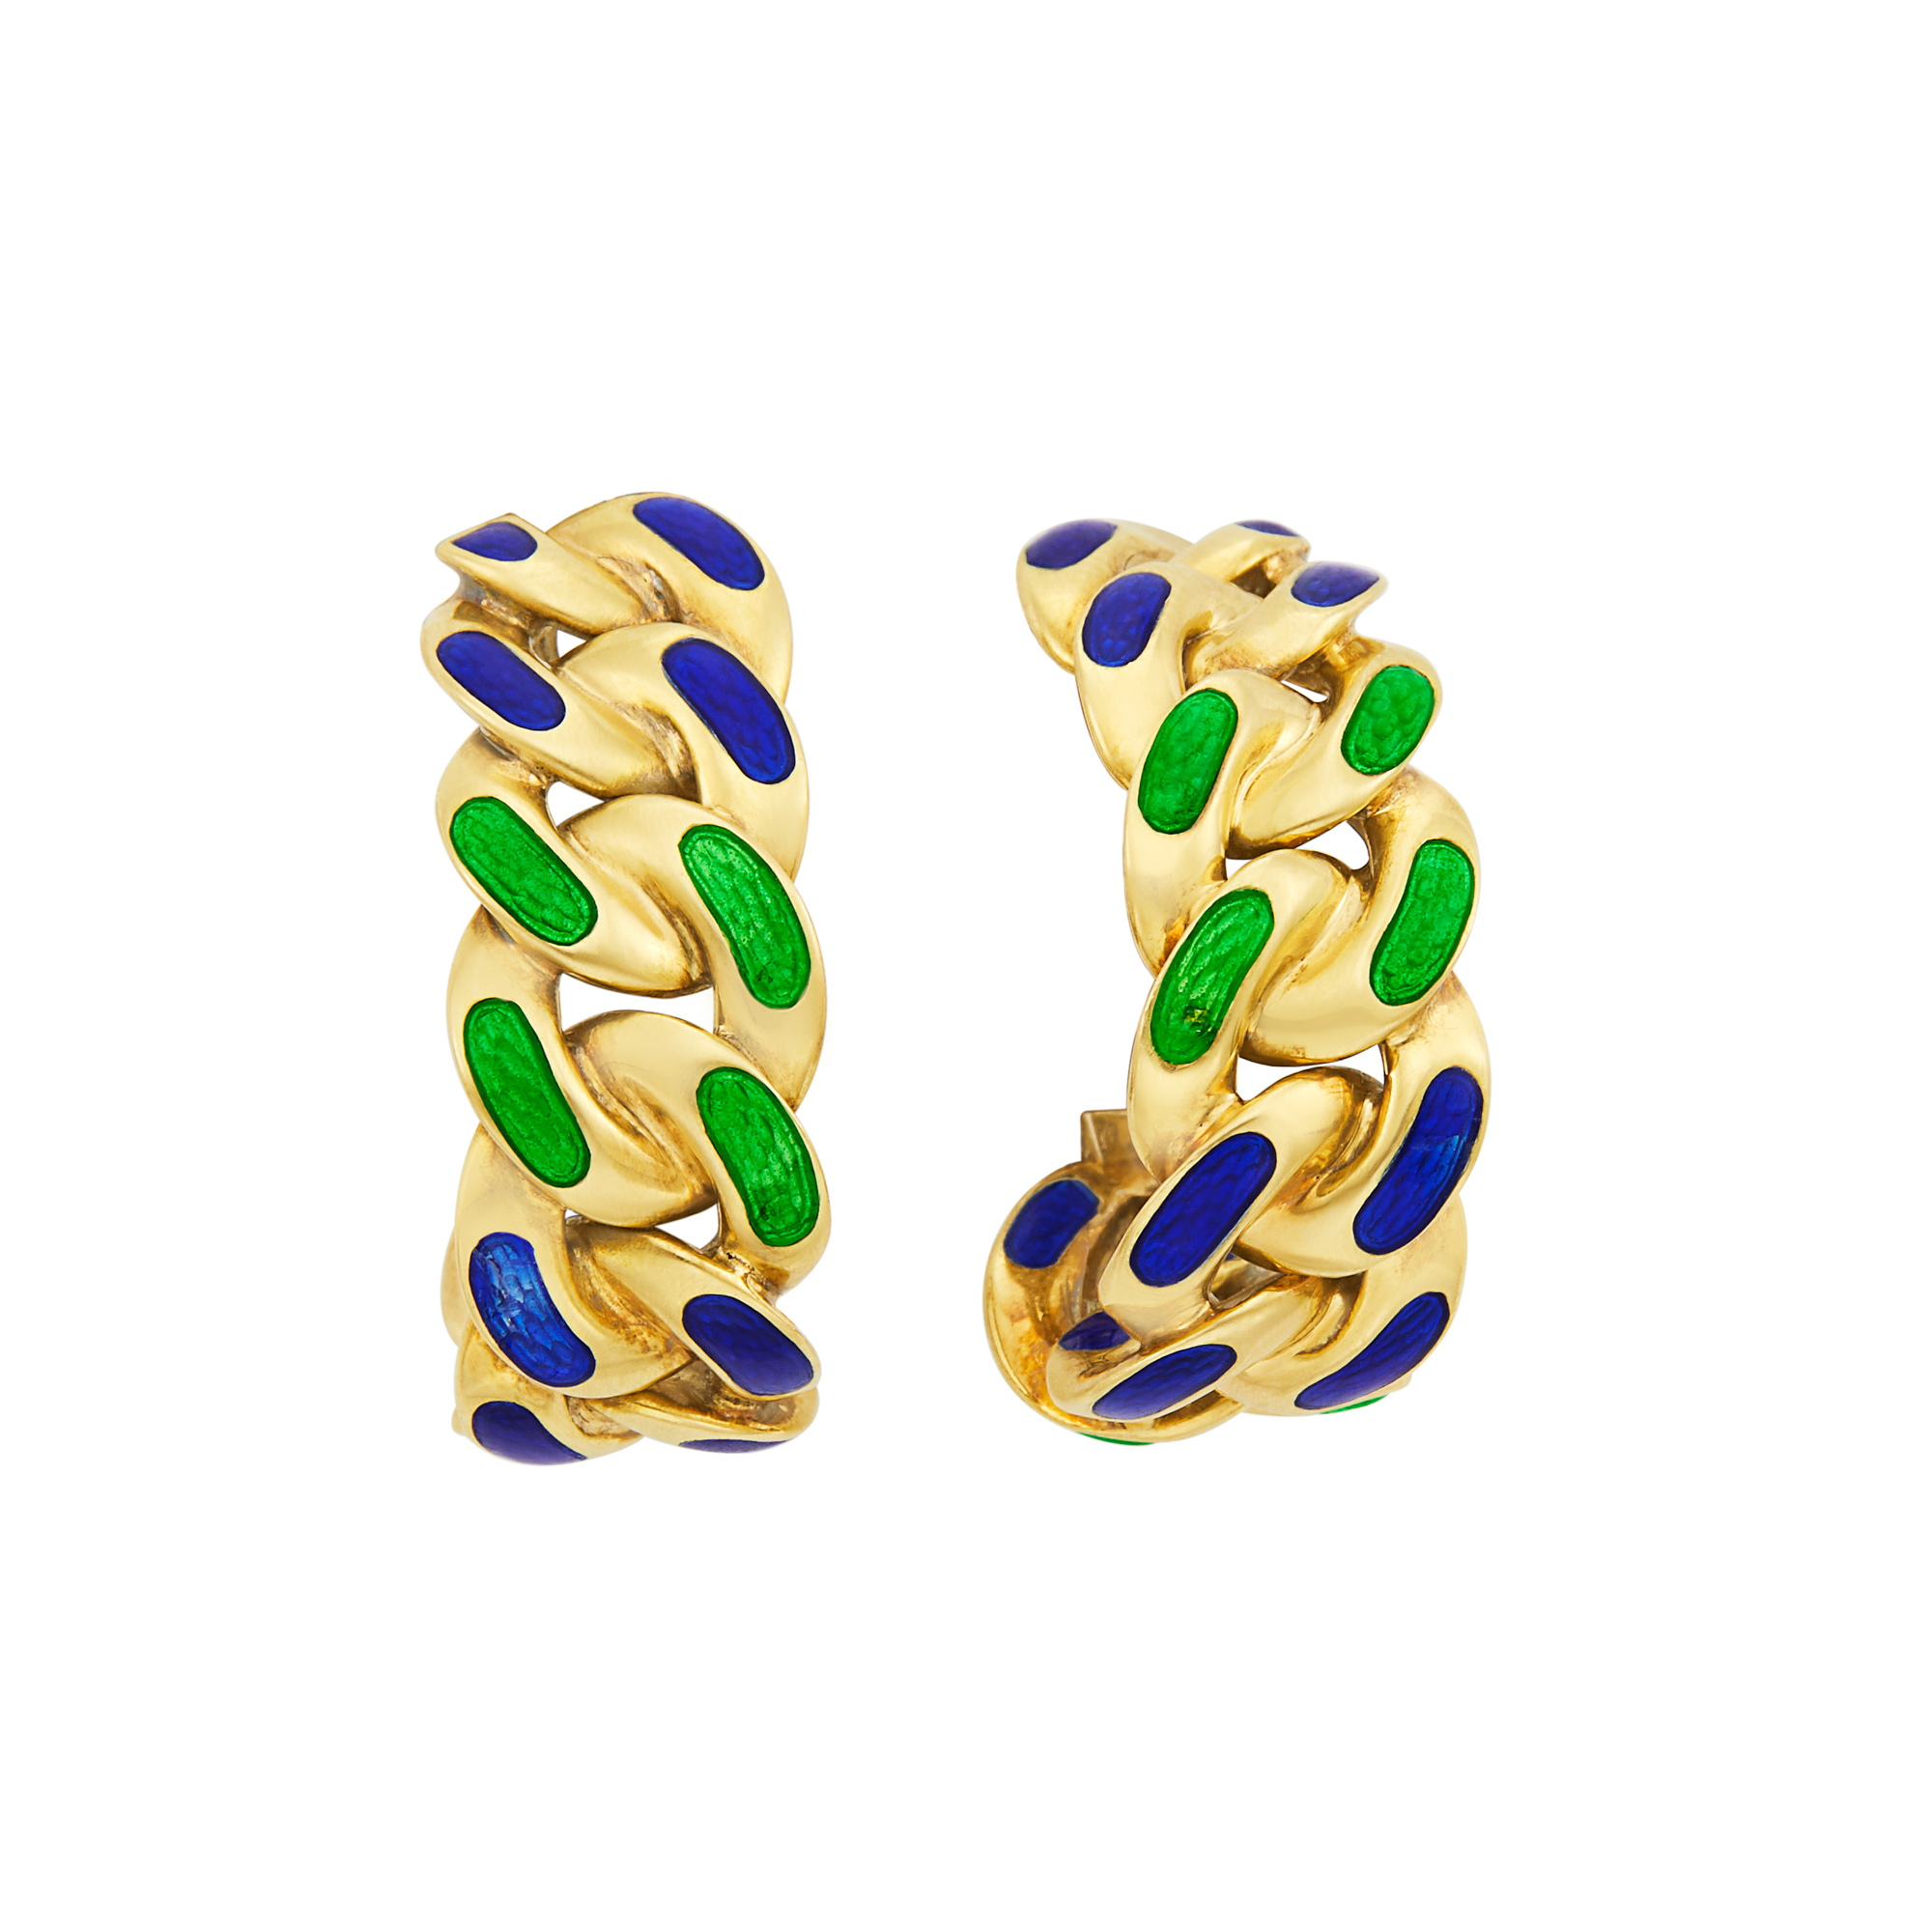 Lot image - Pair of Gold and Blue and Green Enamel Curb Link Hoop Earrings, Bulgari